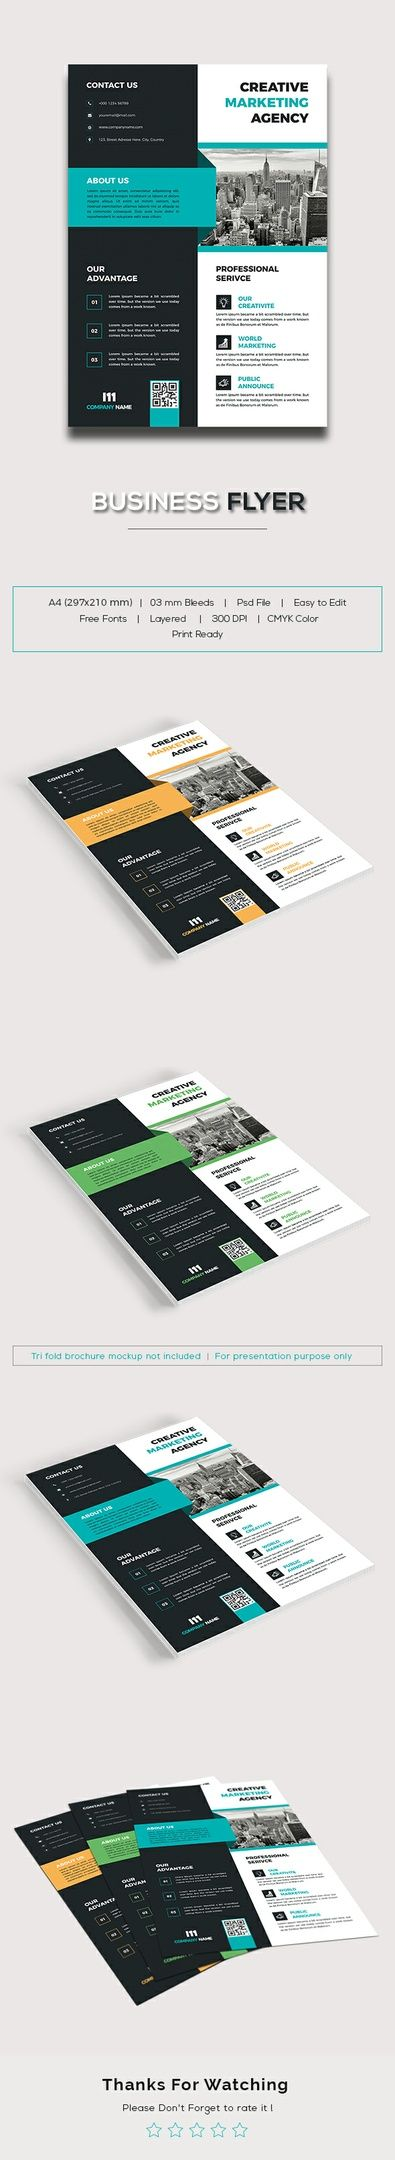 business flyer business flyers company profile and print templates